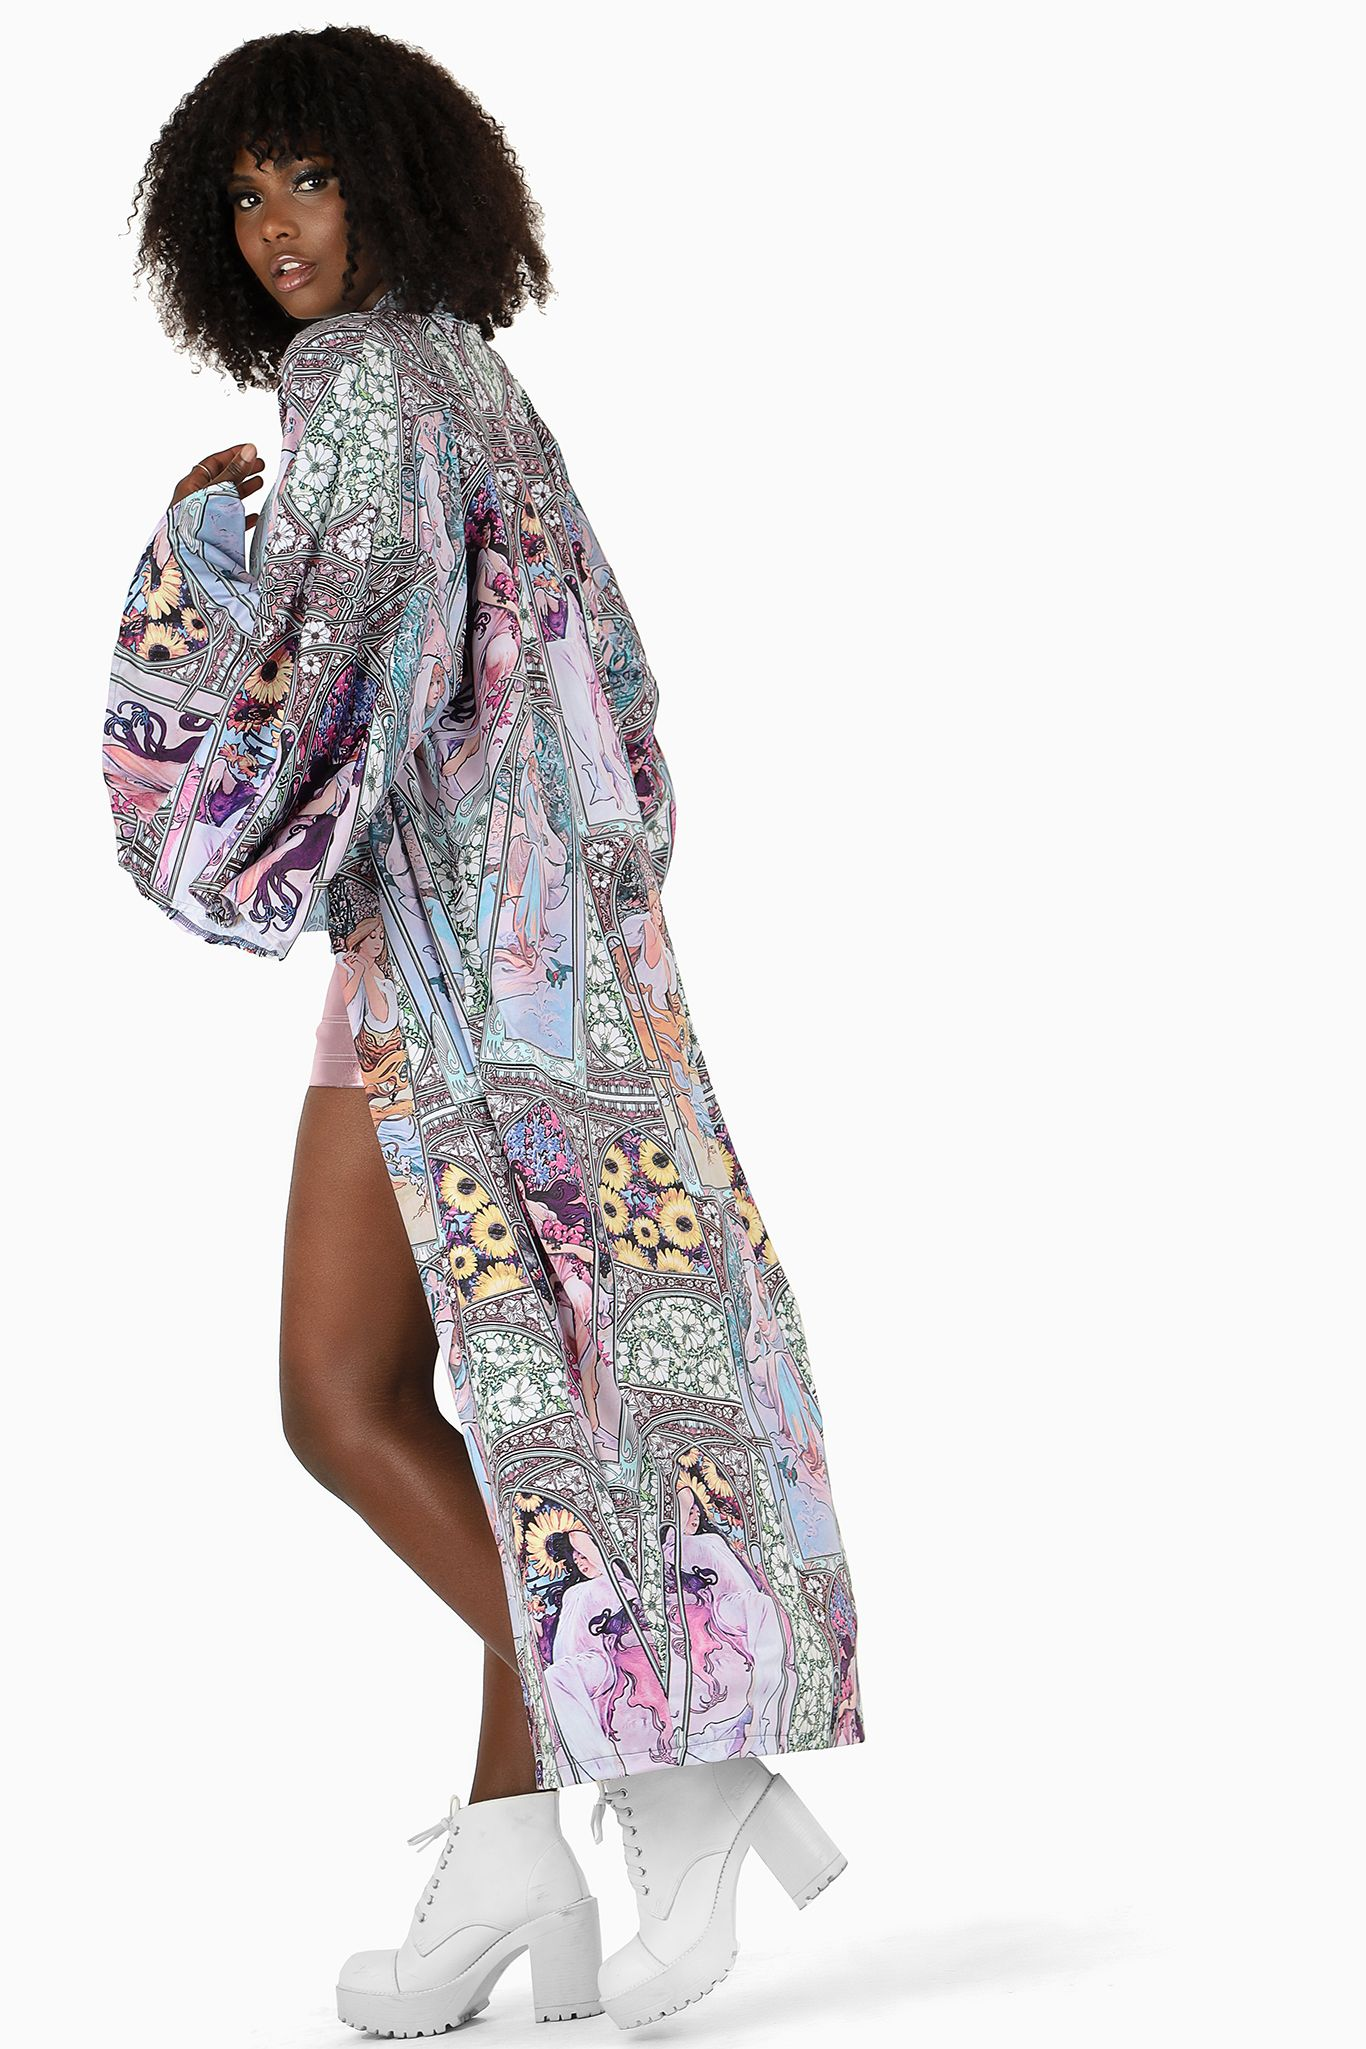 Four Seasons Swan Kimono Limited 160aud With Images